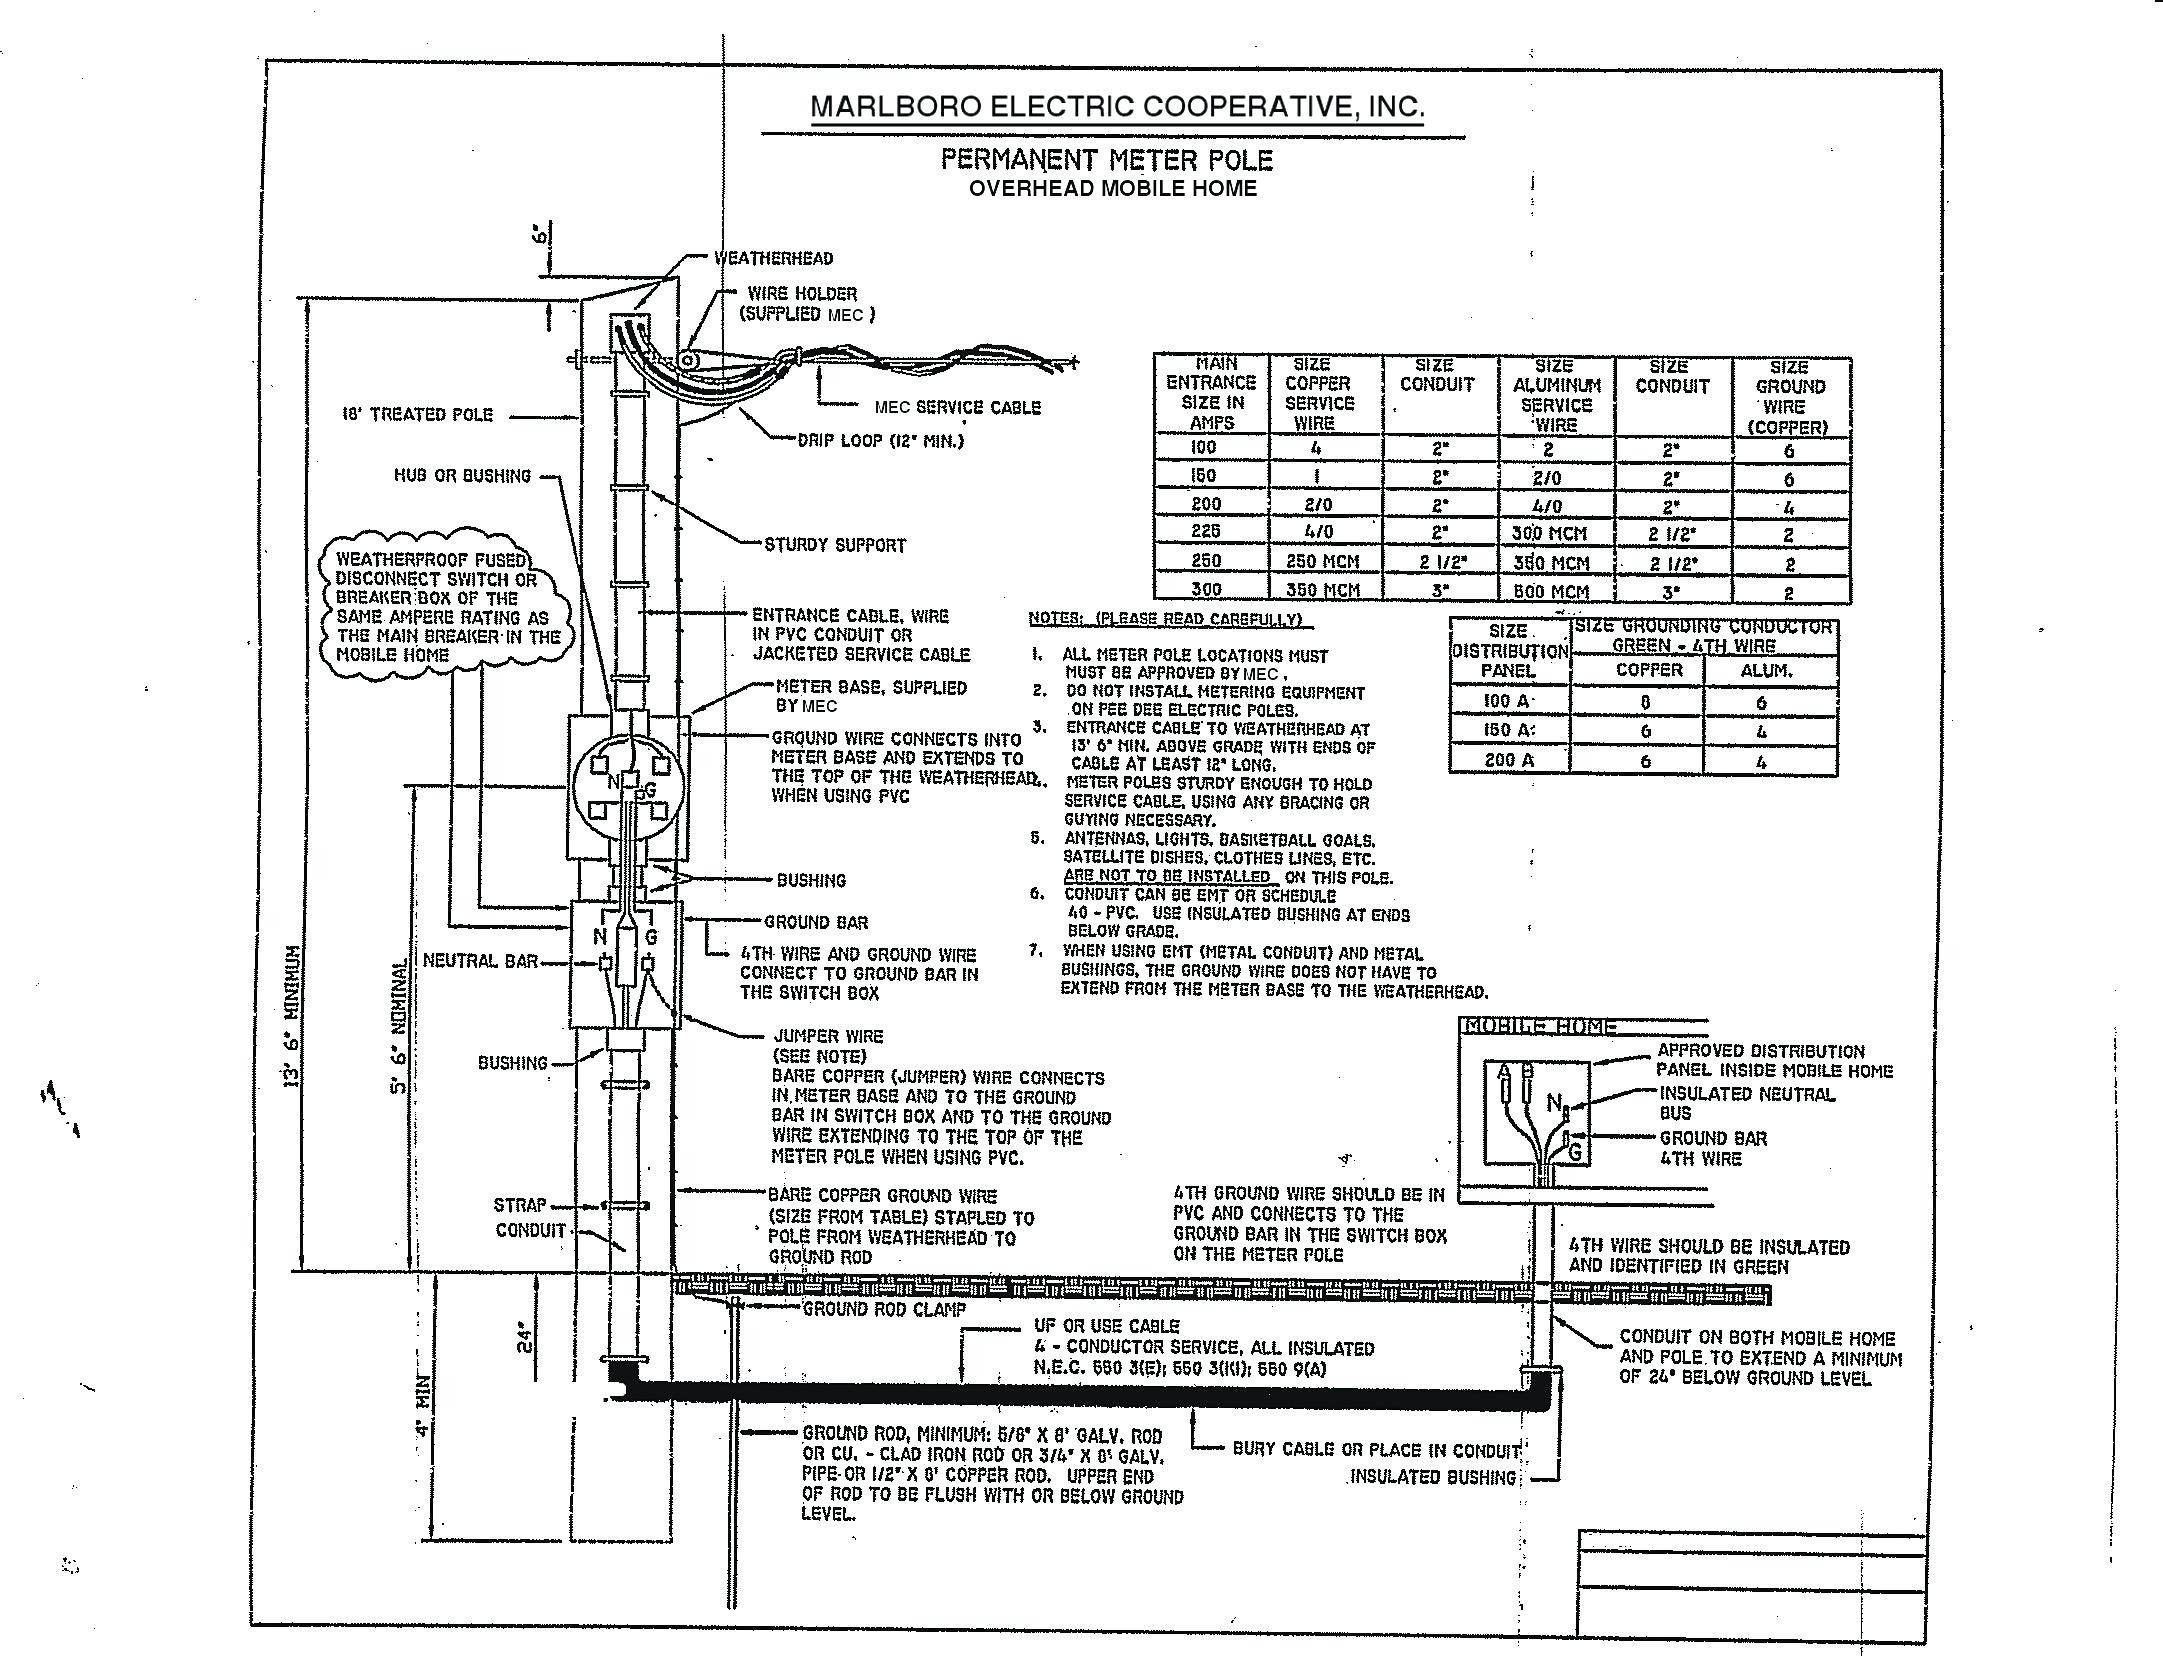 Typical Mobile Home Wiring Diagram - Wiring Diagram •